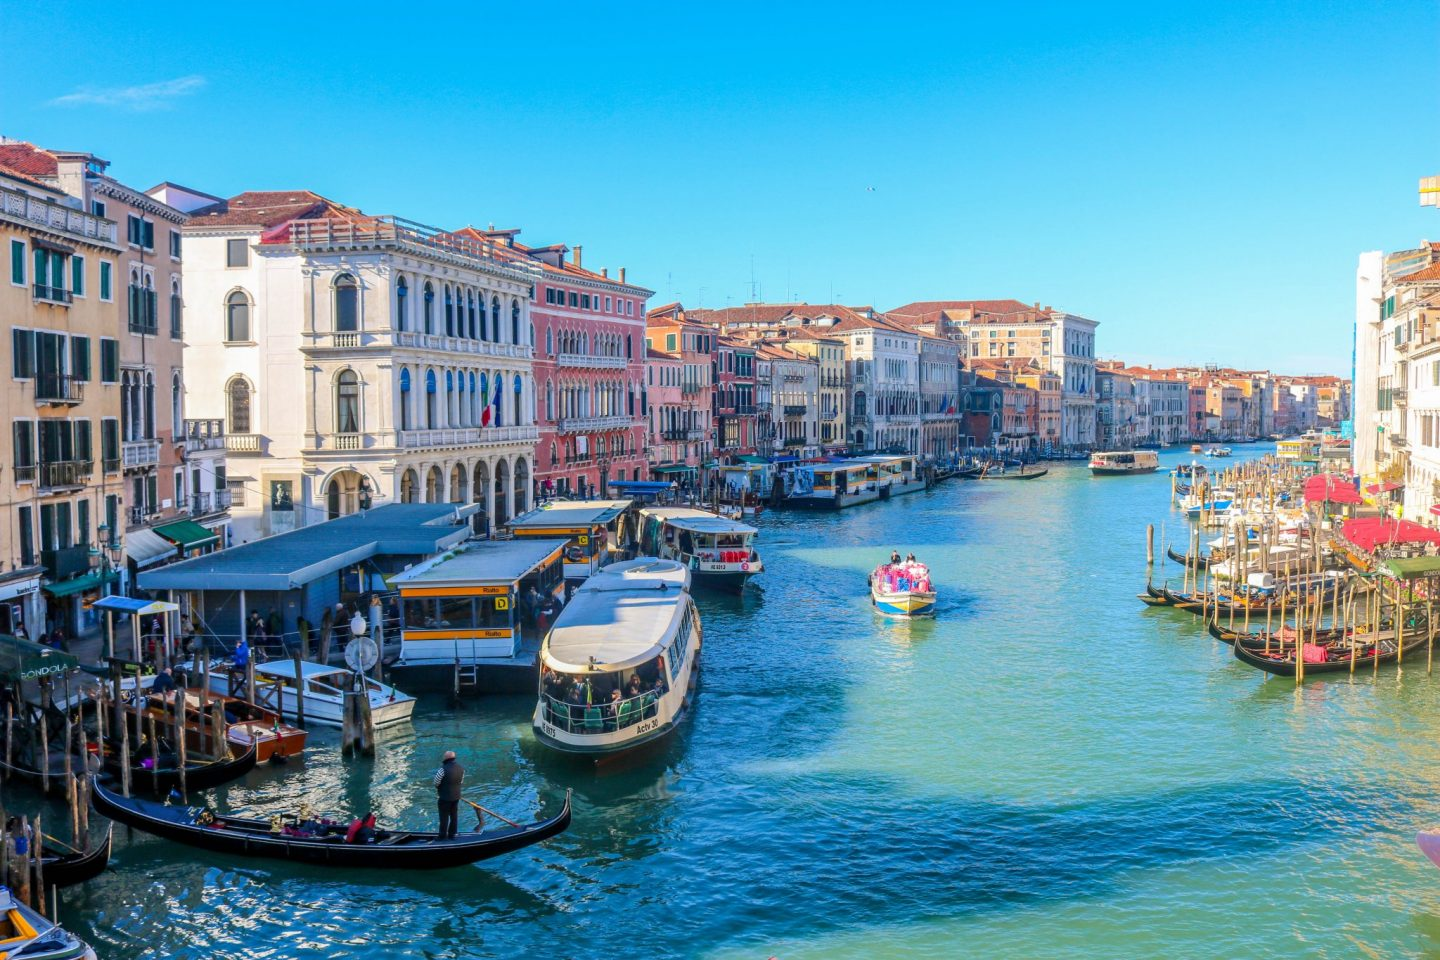 Venice travel guide – What to see and do in the City of Canals